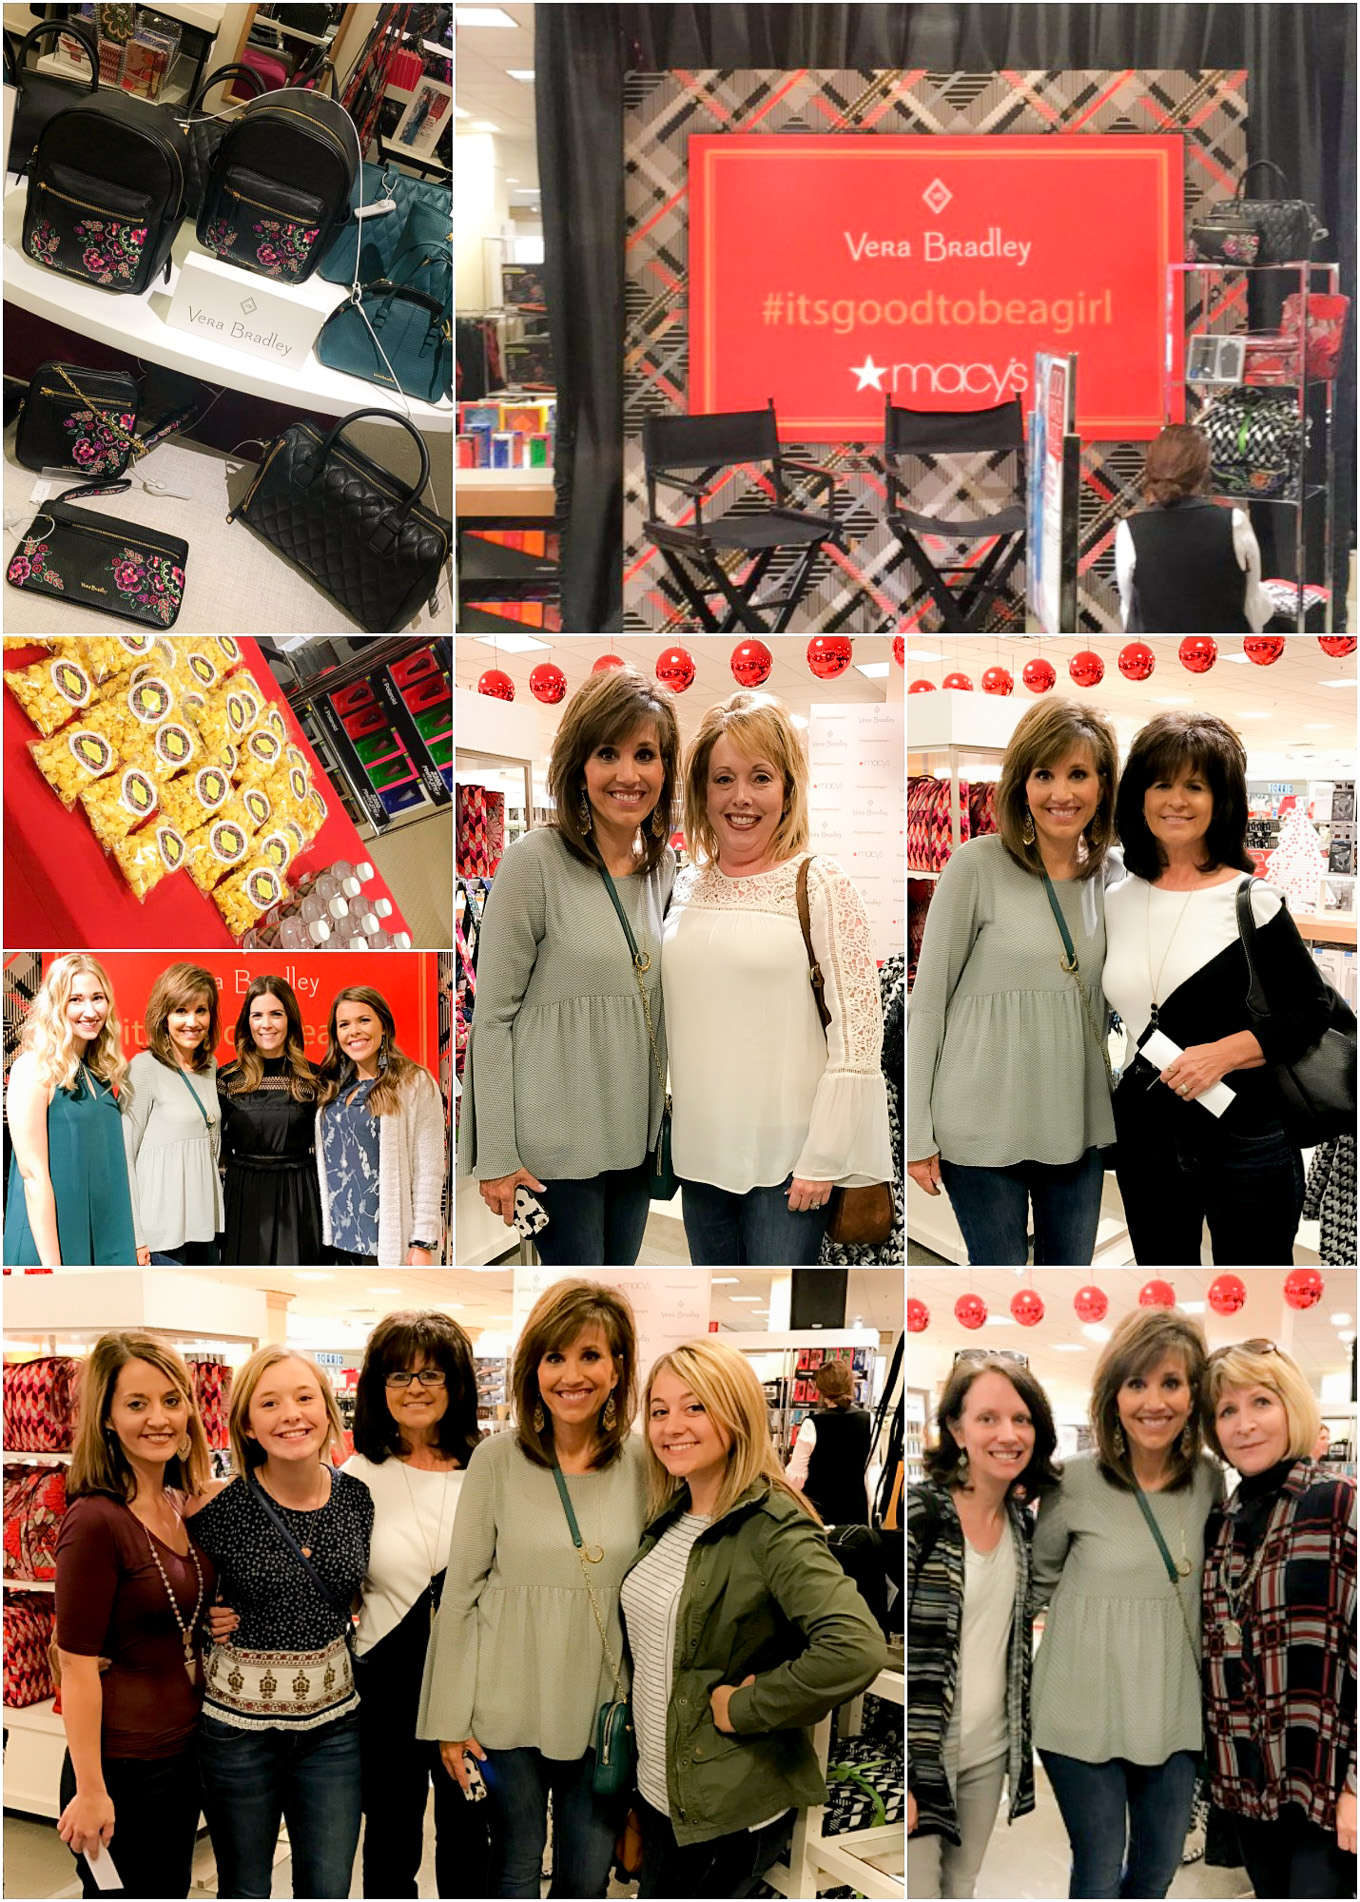 Vera Bradley Event at Macy's with fashion blogger, Cyndi Spivey.